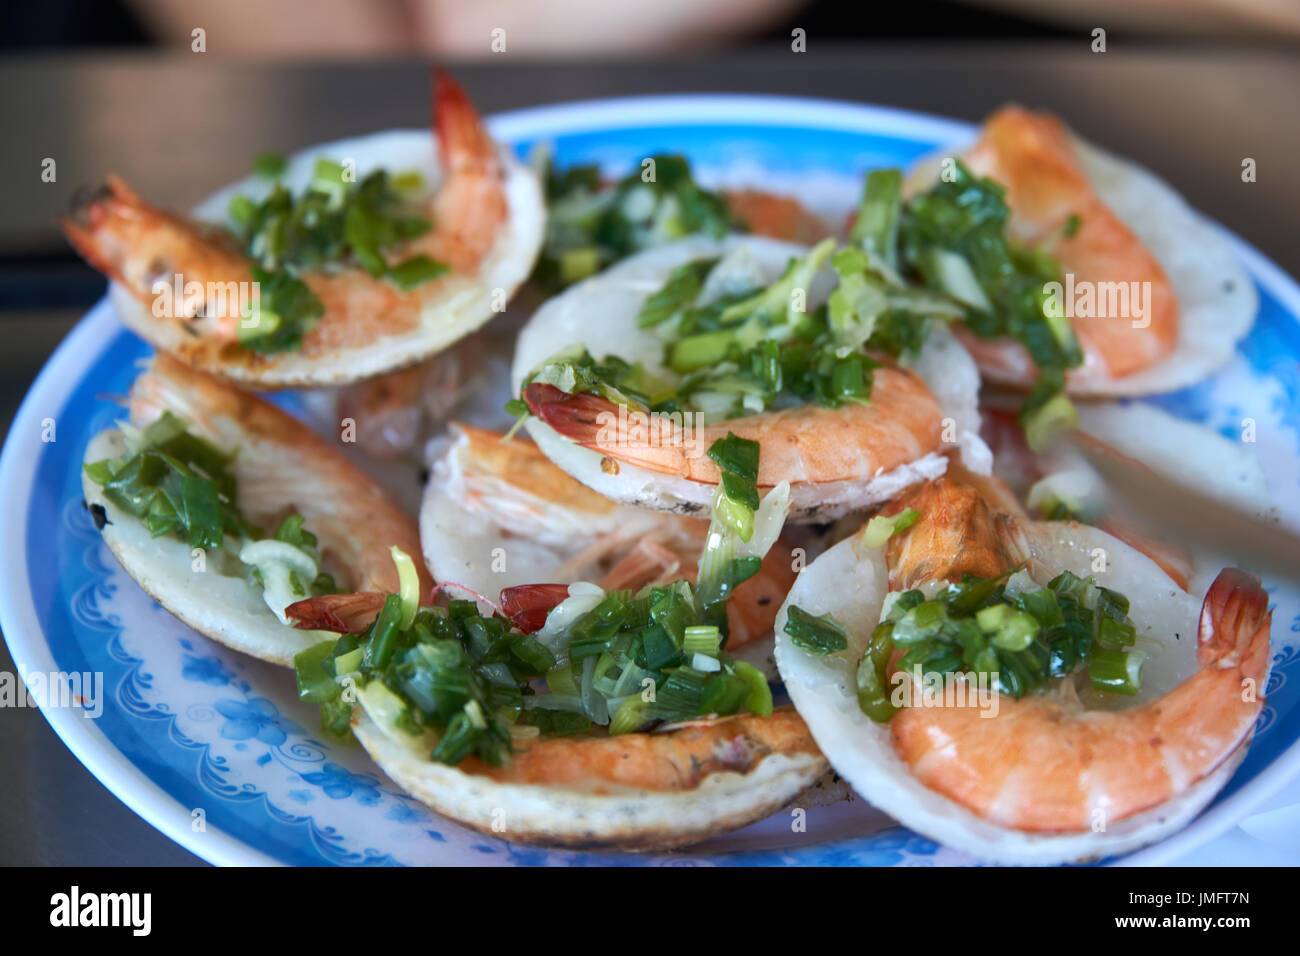 Vietnamese food and vegetable on dish. Nha trang, Vietnam. - Stock Image